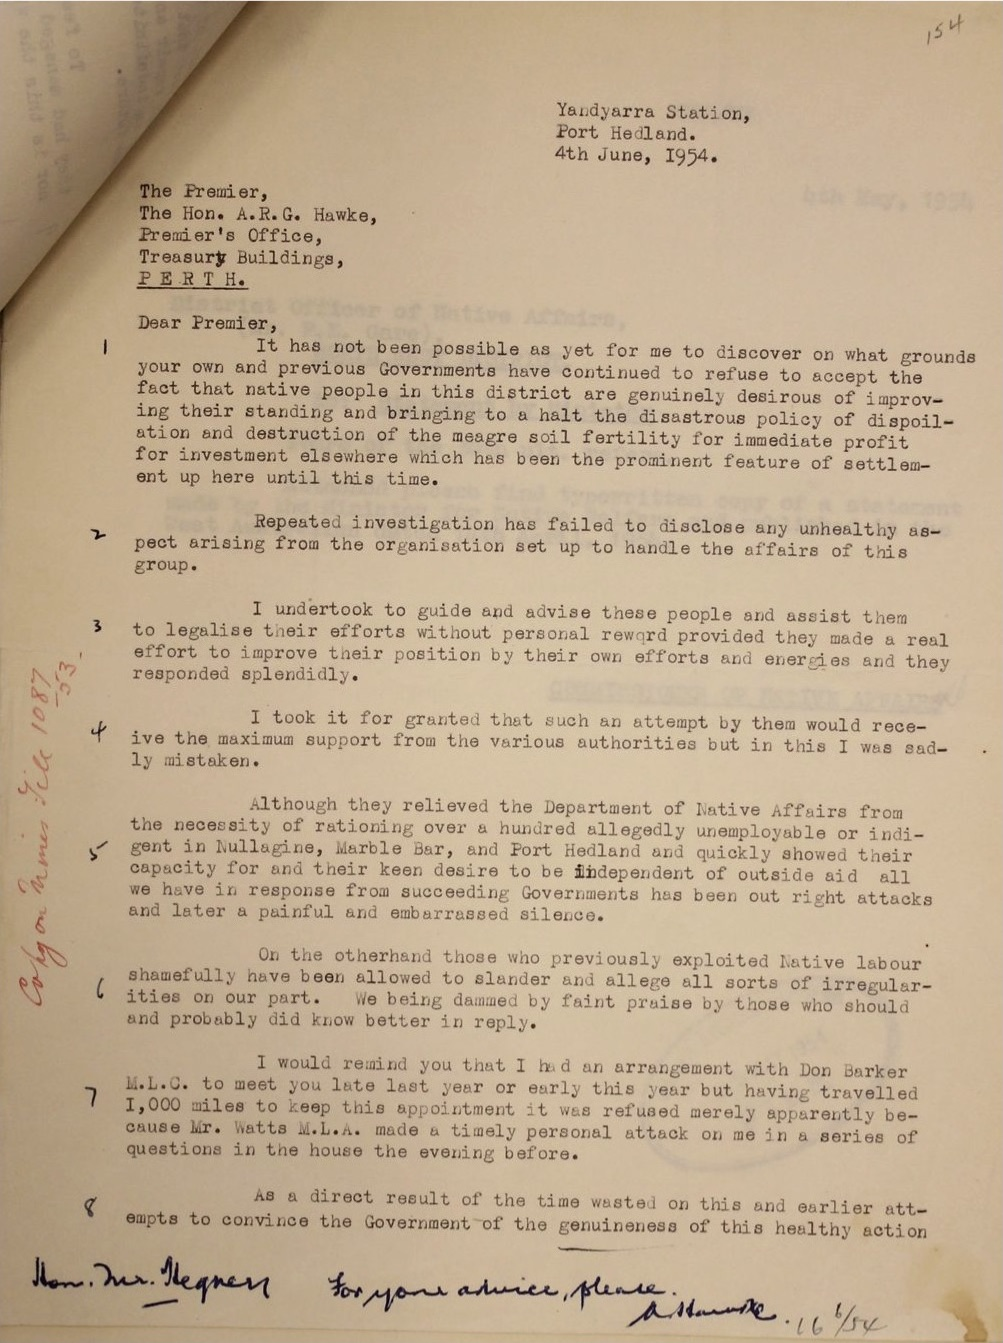 McLeod to Premier Hawke, 4 June 1954